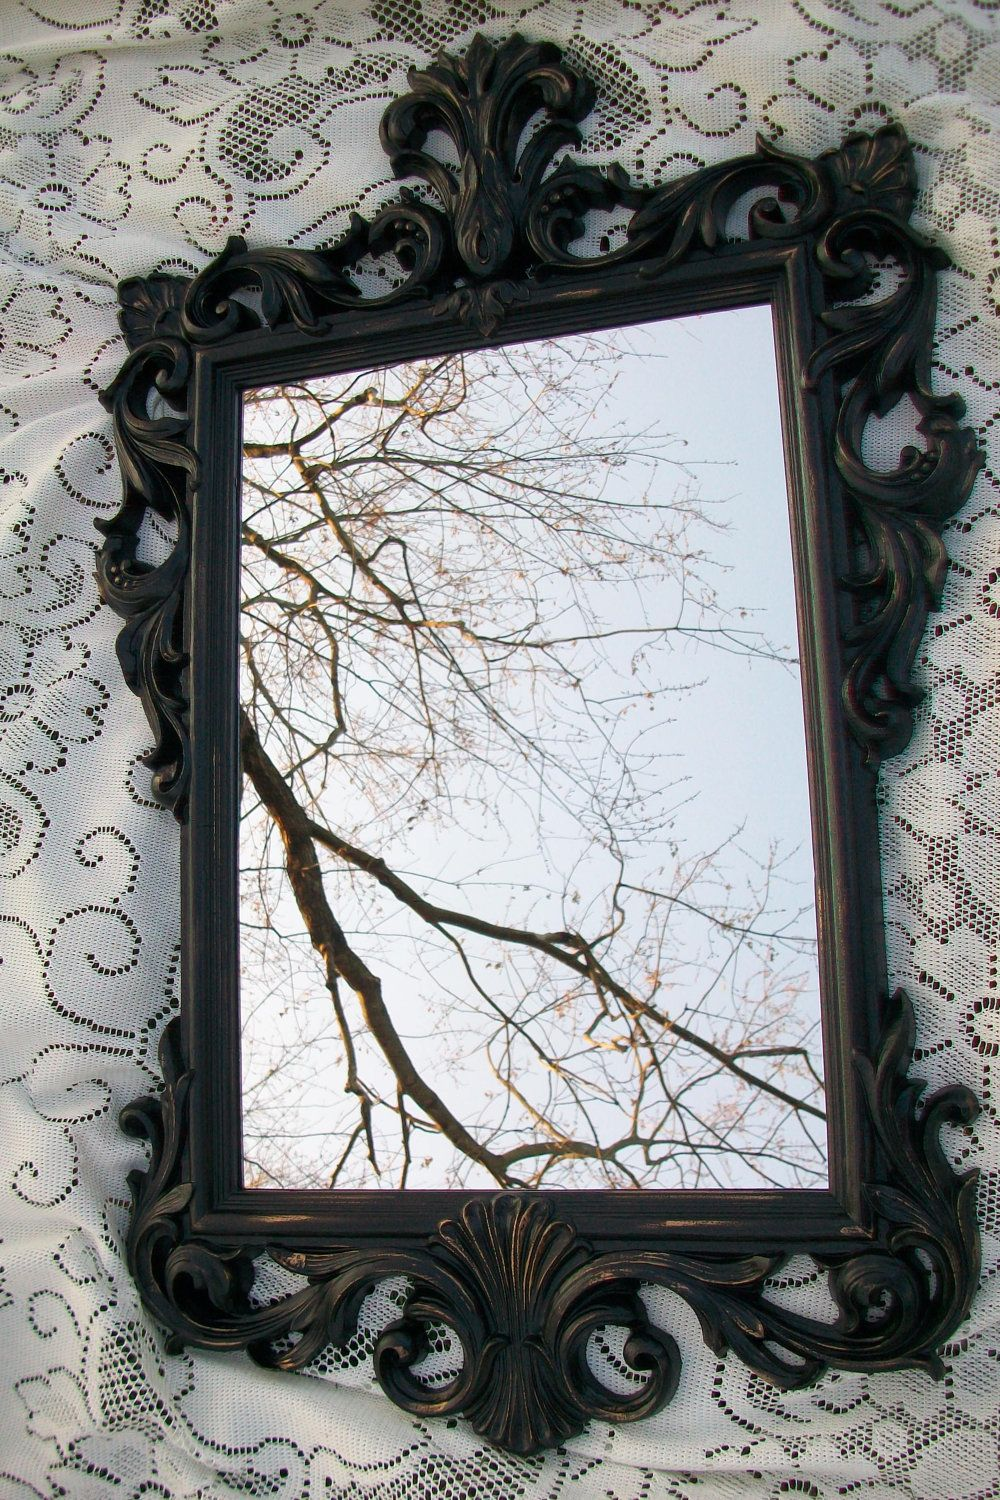 large vintage mirror black mirror ornate mirror gothic distressed black and gold wall mirror. Black Bedroom Furniture Sets. Home Design Ideas